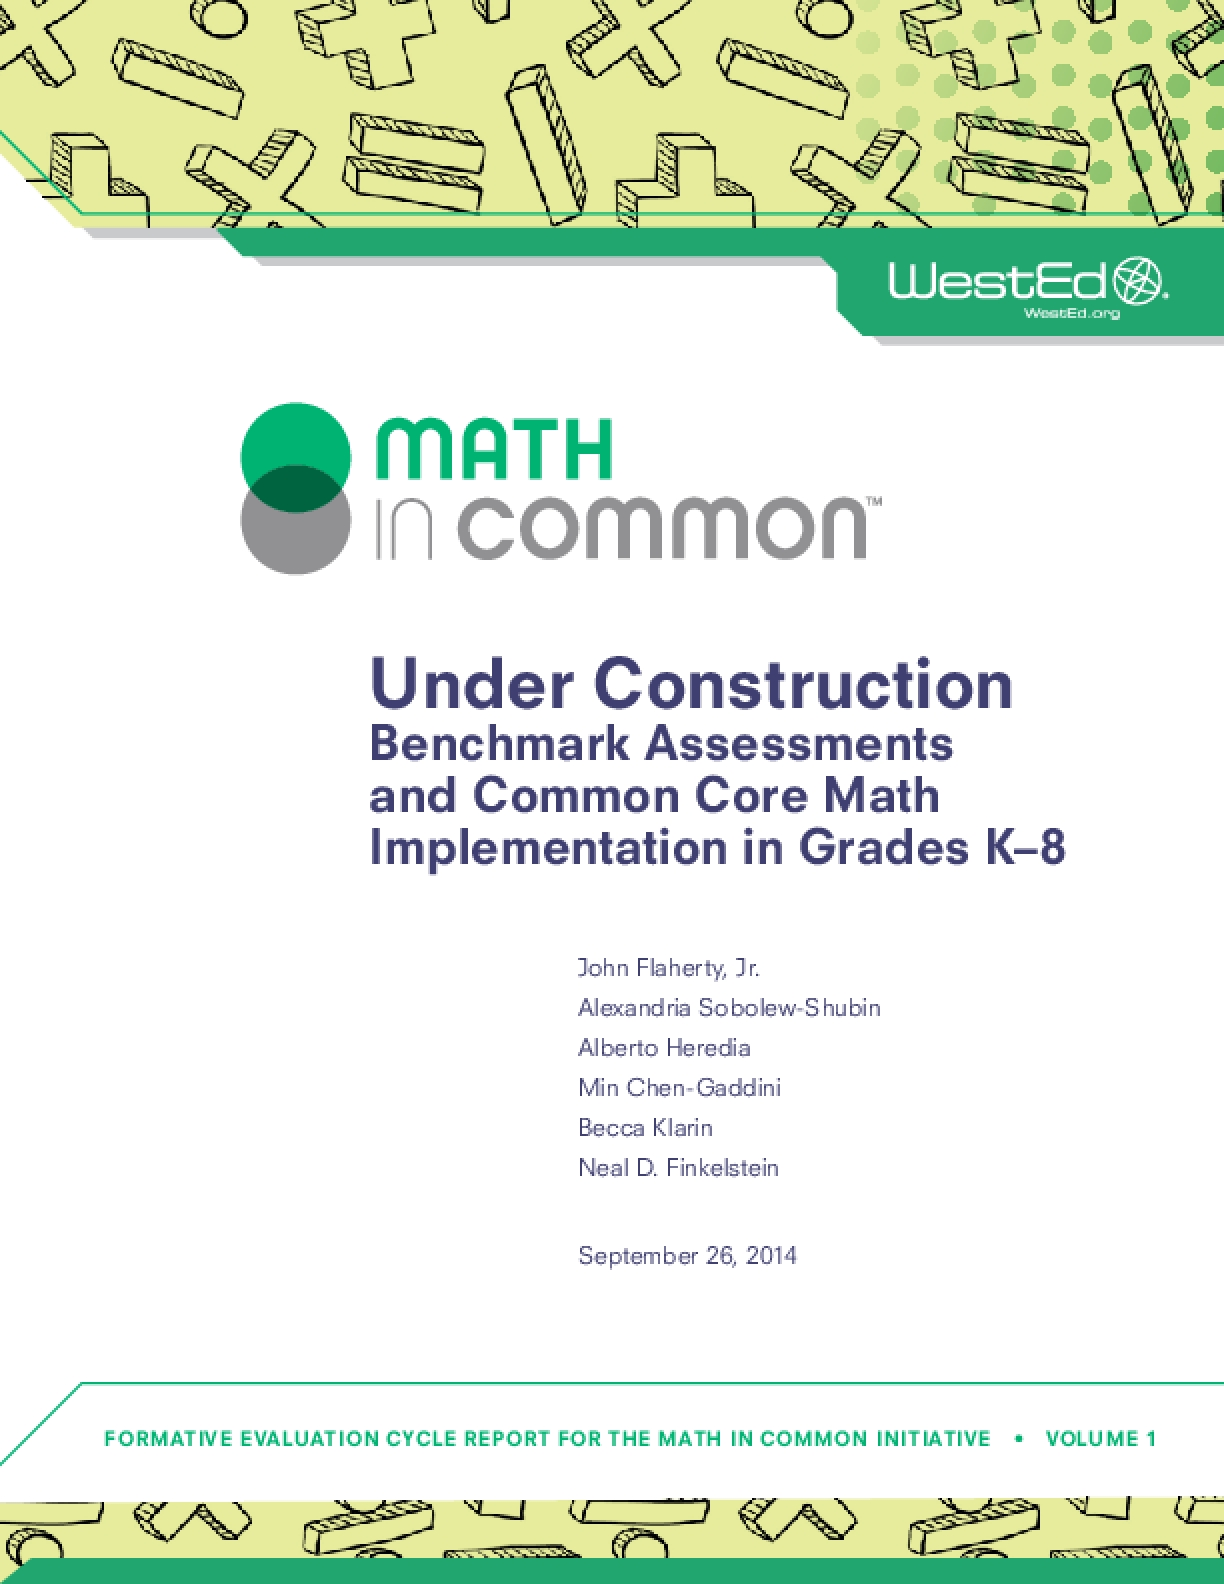 Under Construction: Benchmark Assessments and Common Core Math Implementation in Grades K-8